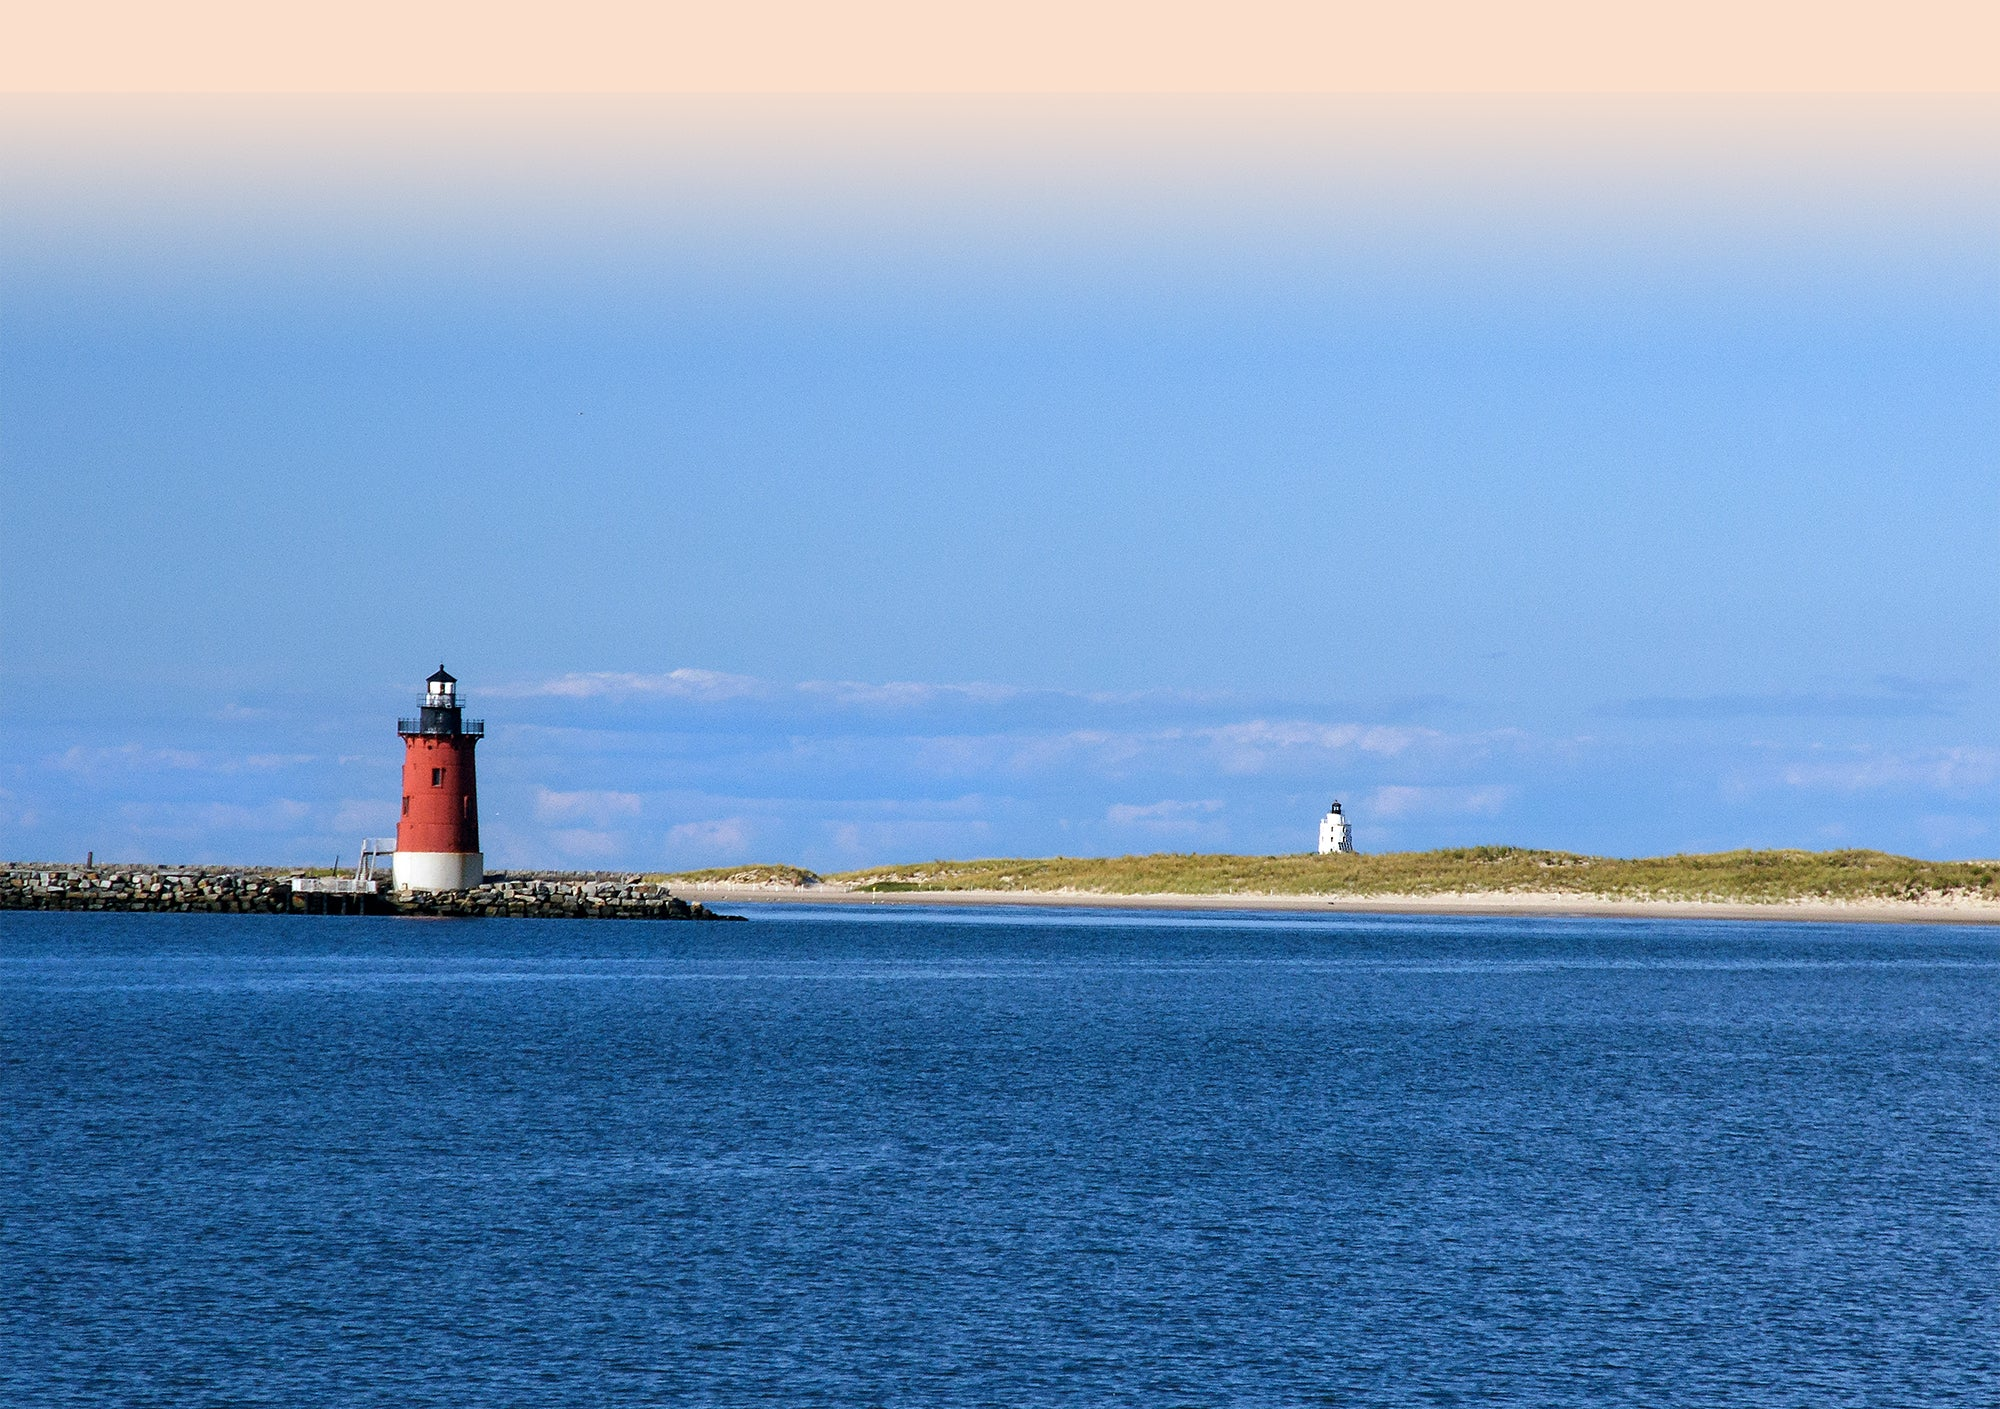 ocean view with light house